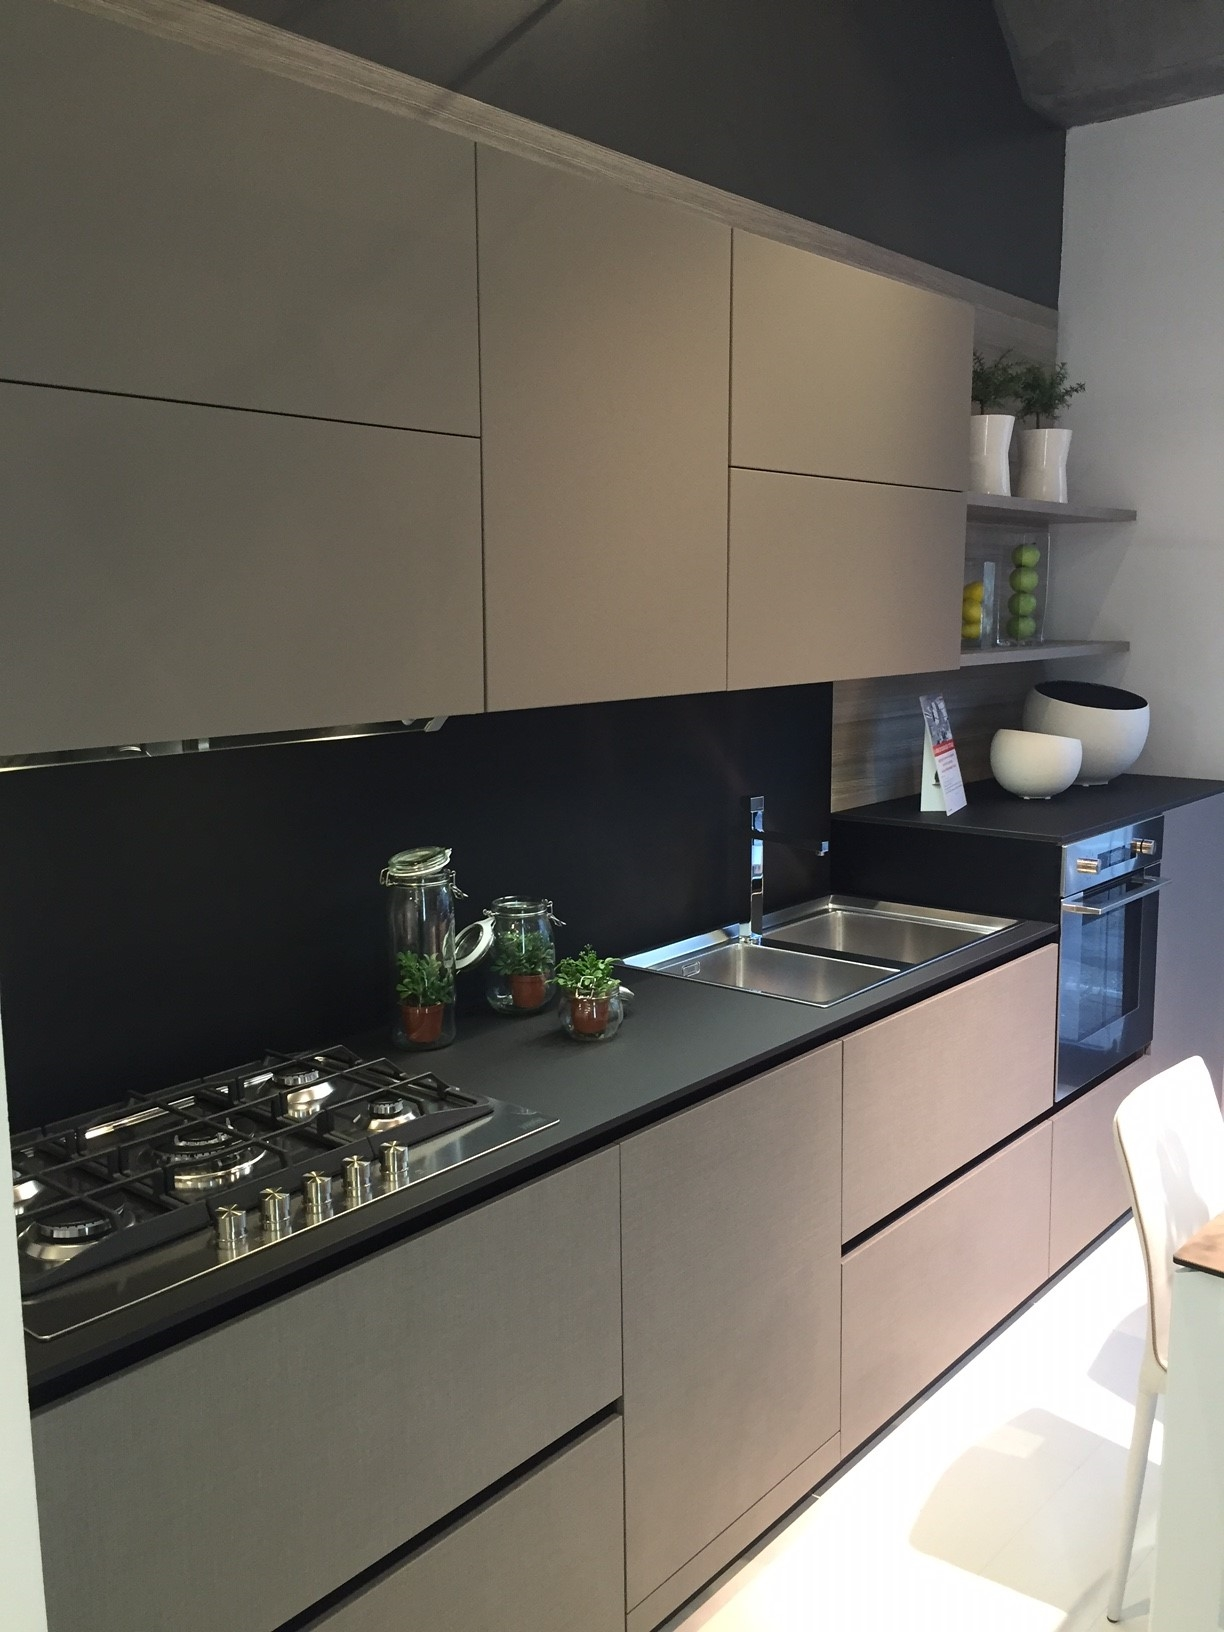 Cucina Rossana Cucine Rossana Prezzi Awesome Gallery With Rossana Cucine With